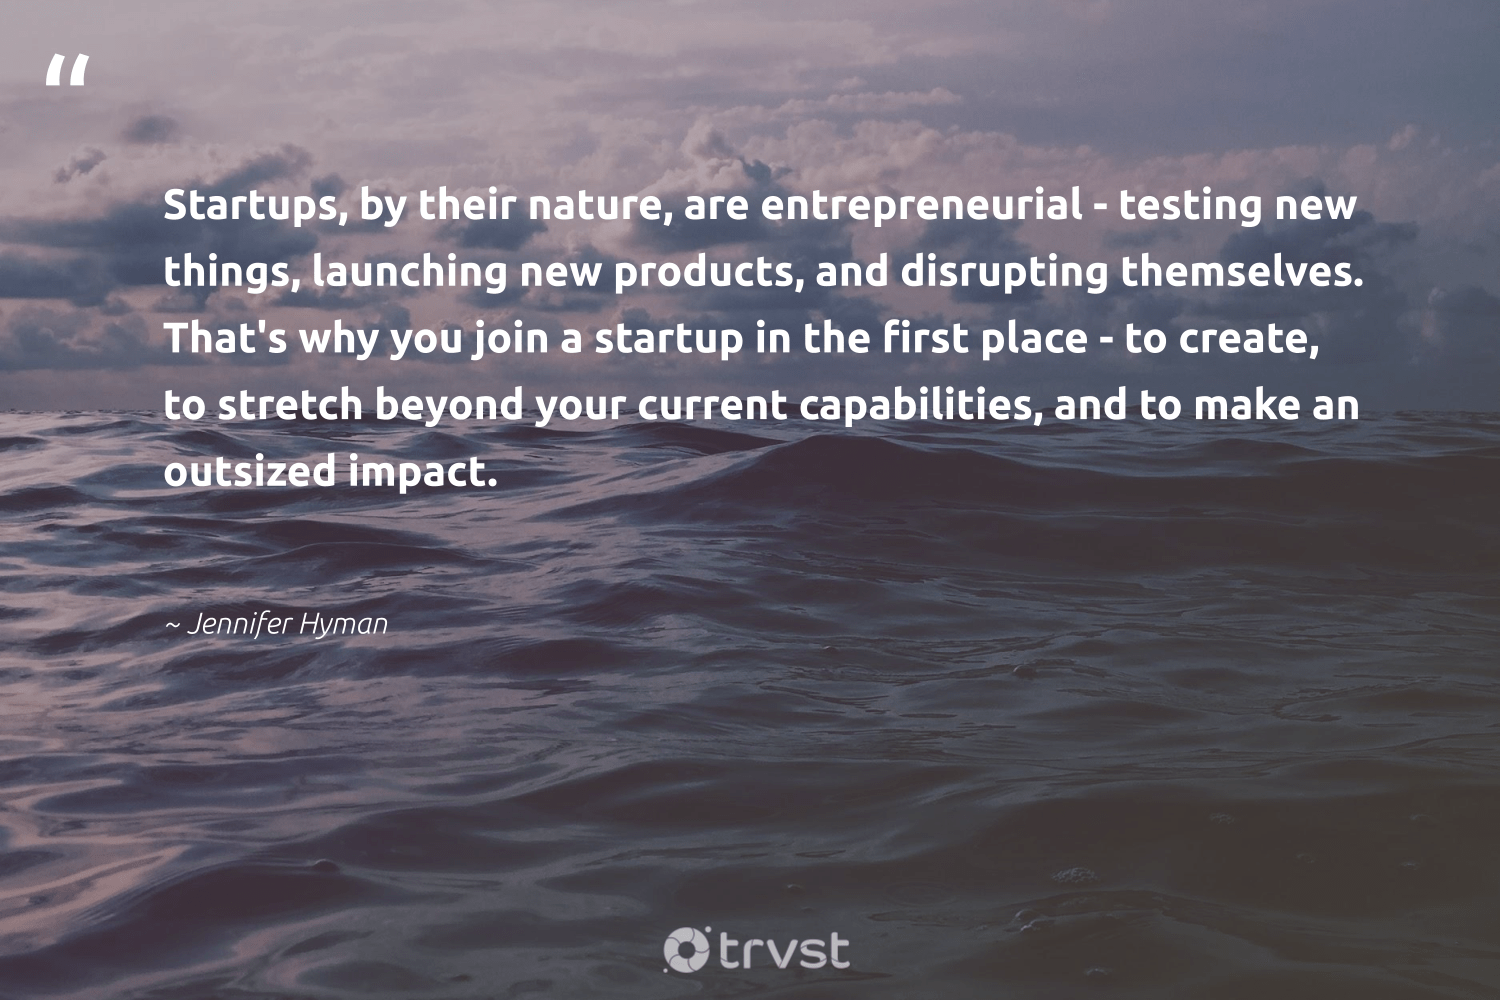 """Startups, by their nature, are entrepreneurial - testing new things, launching new products, and disrupting themselves. That's why you join a startup in the first place - to create, to stretch beyond your current capabilities, and to make an outsized impact.""  - Jennifer Hyman #trvst #quotes #impact #nature #startup #planet #makeadifference #green #gogreen #conservation #socialchange #climatechange"